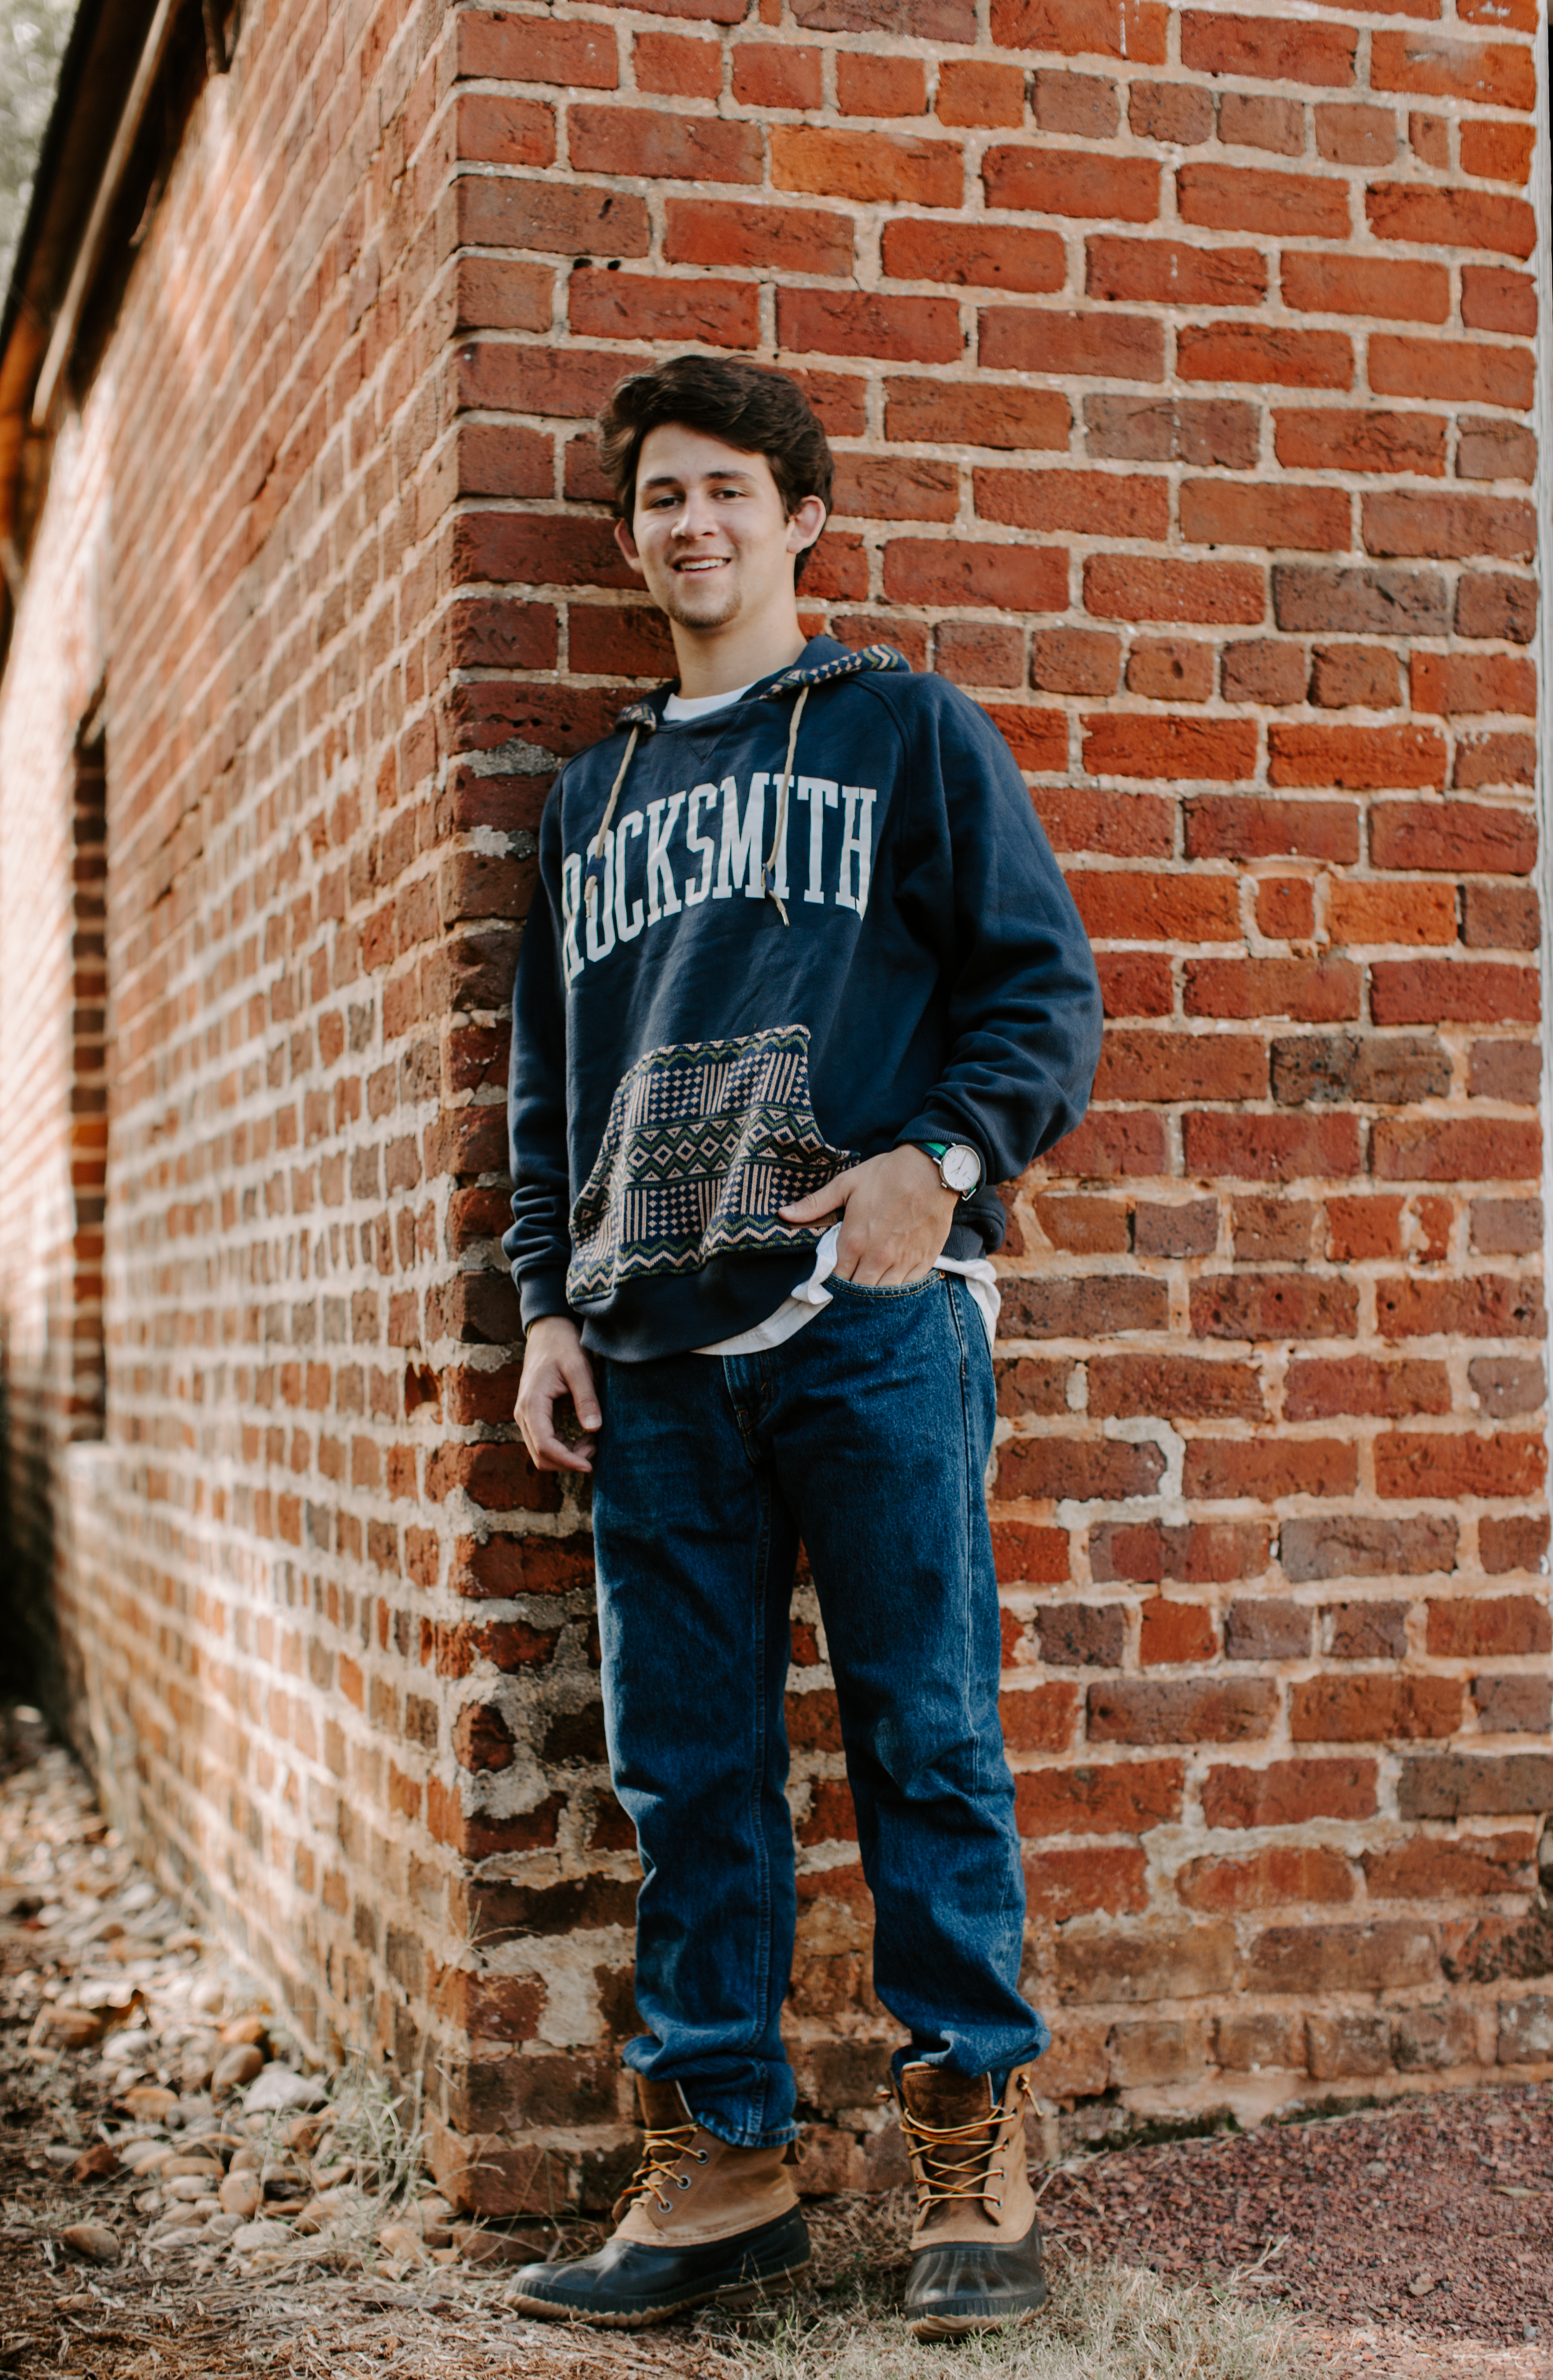 Christian O. Senior pictures collared shirt button up stairs poses pictures baseball senior garden dog and man open field golden hour sweatshirt brick wall